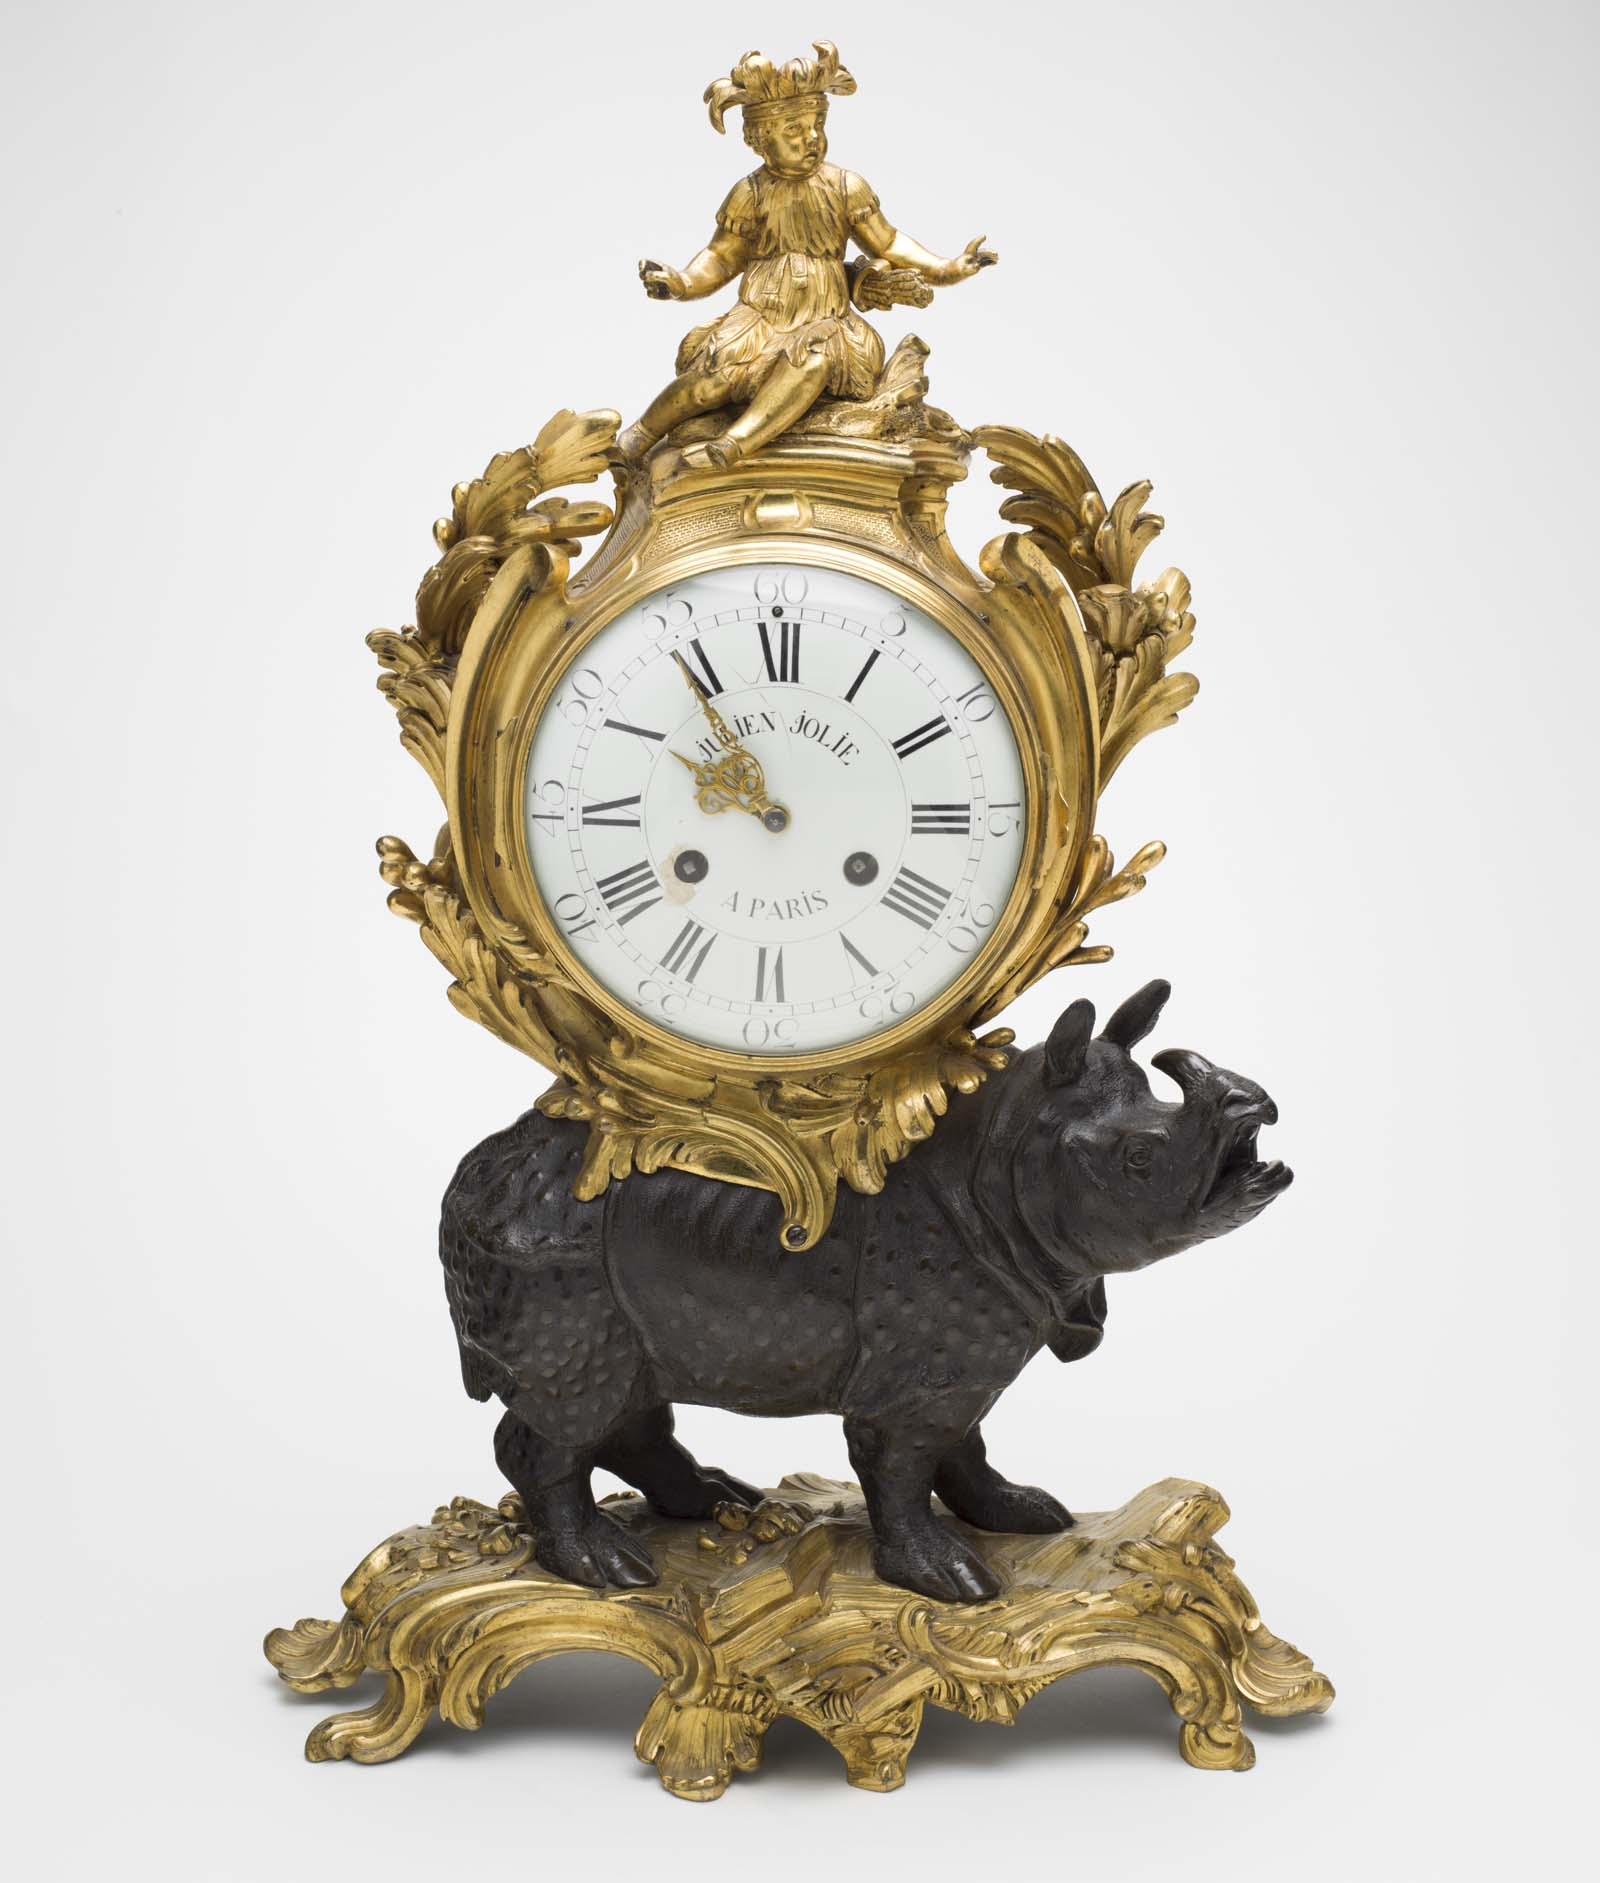 ornate gold clock mounted onto a black porcelain rhino on a gold stand